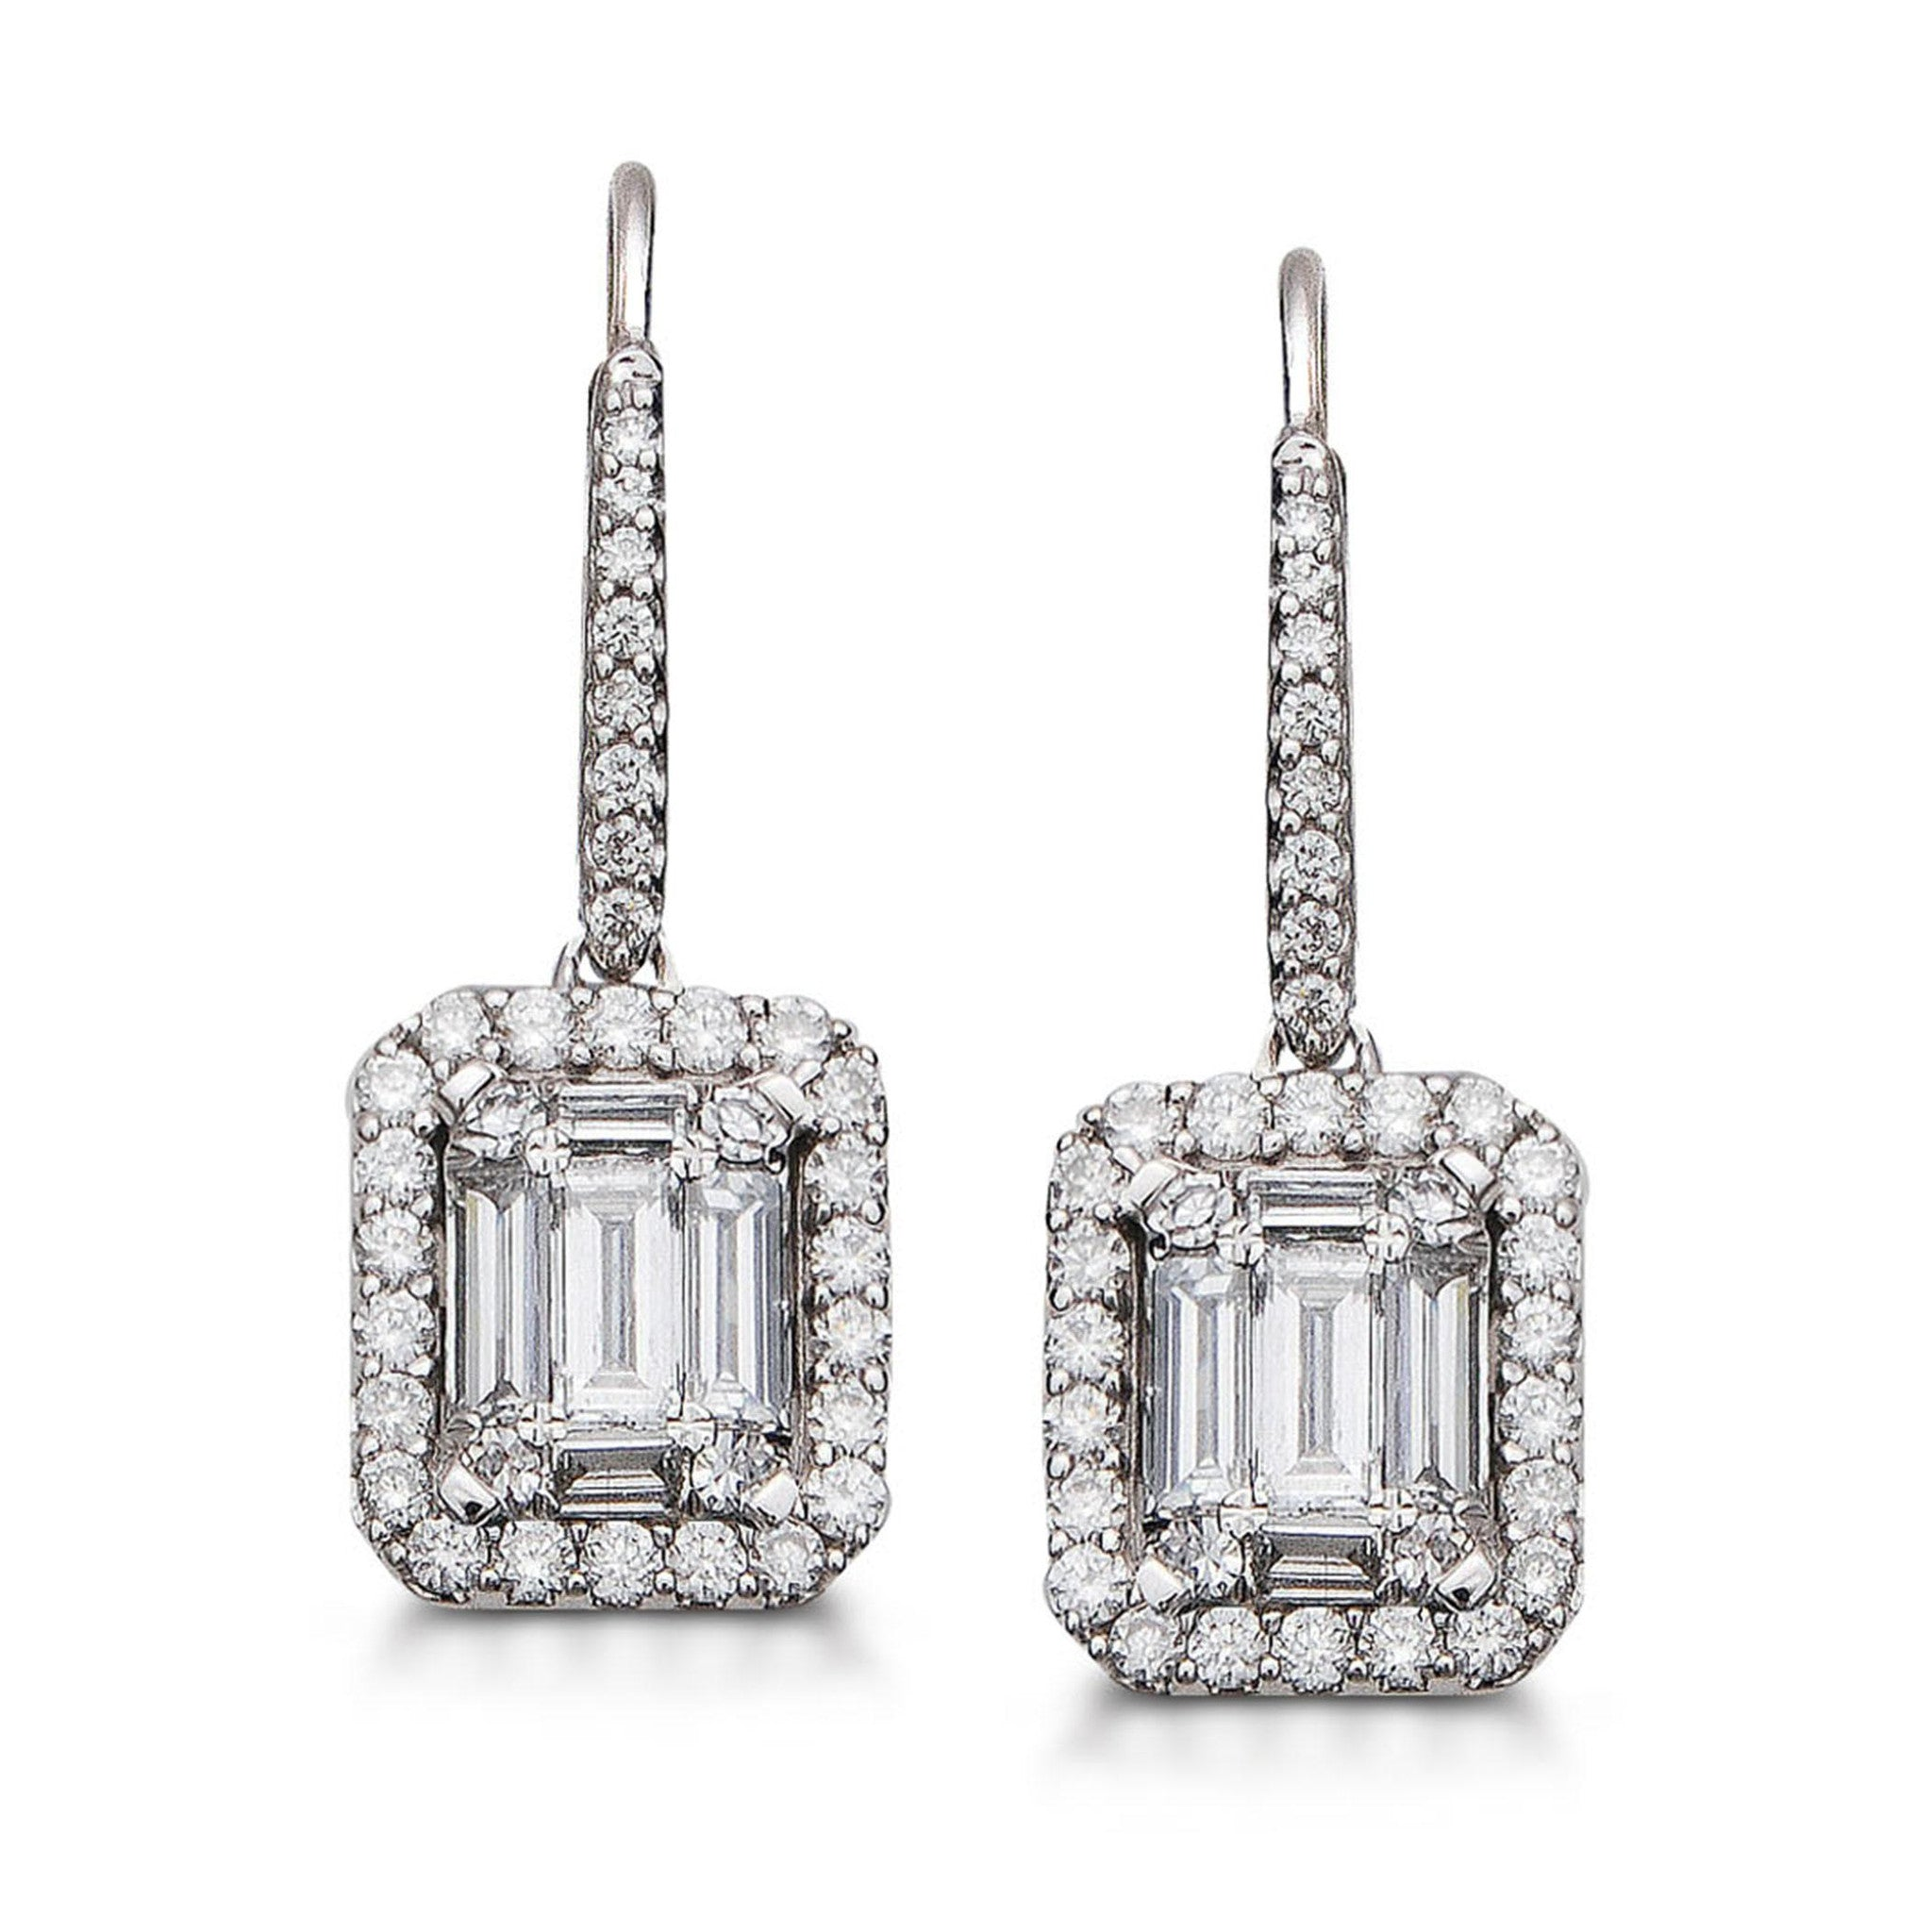 y earrings blue topaz kravit studs and jewelers shop bt halo diamond luvente